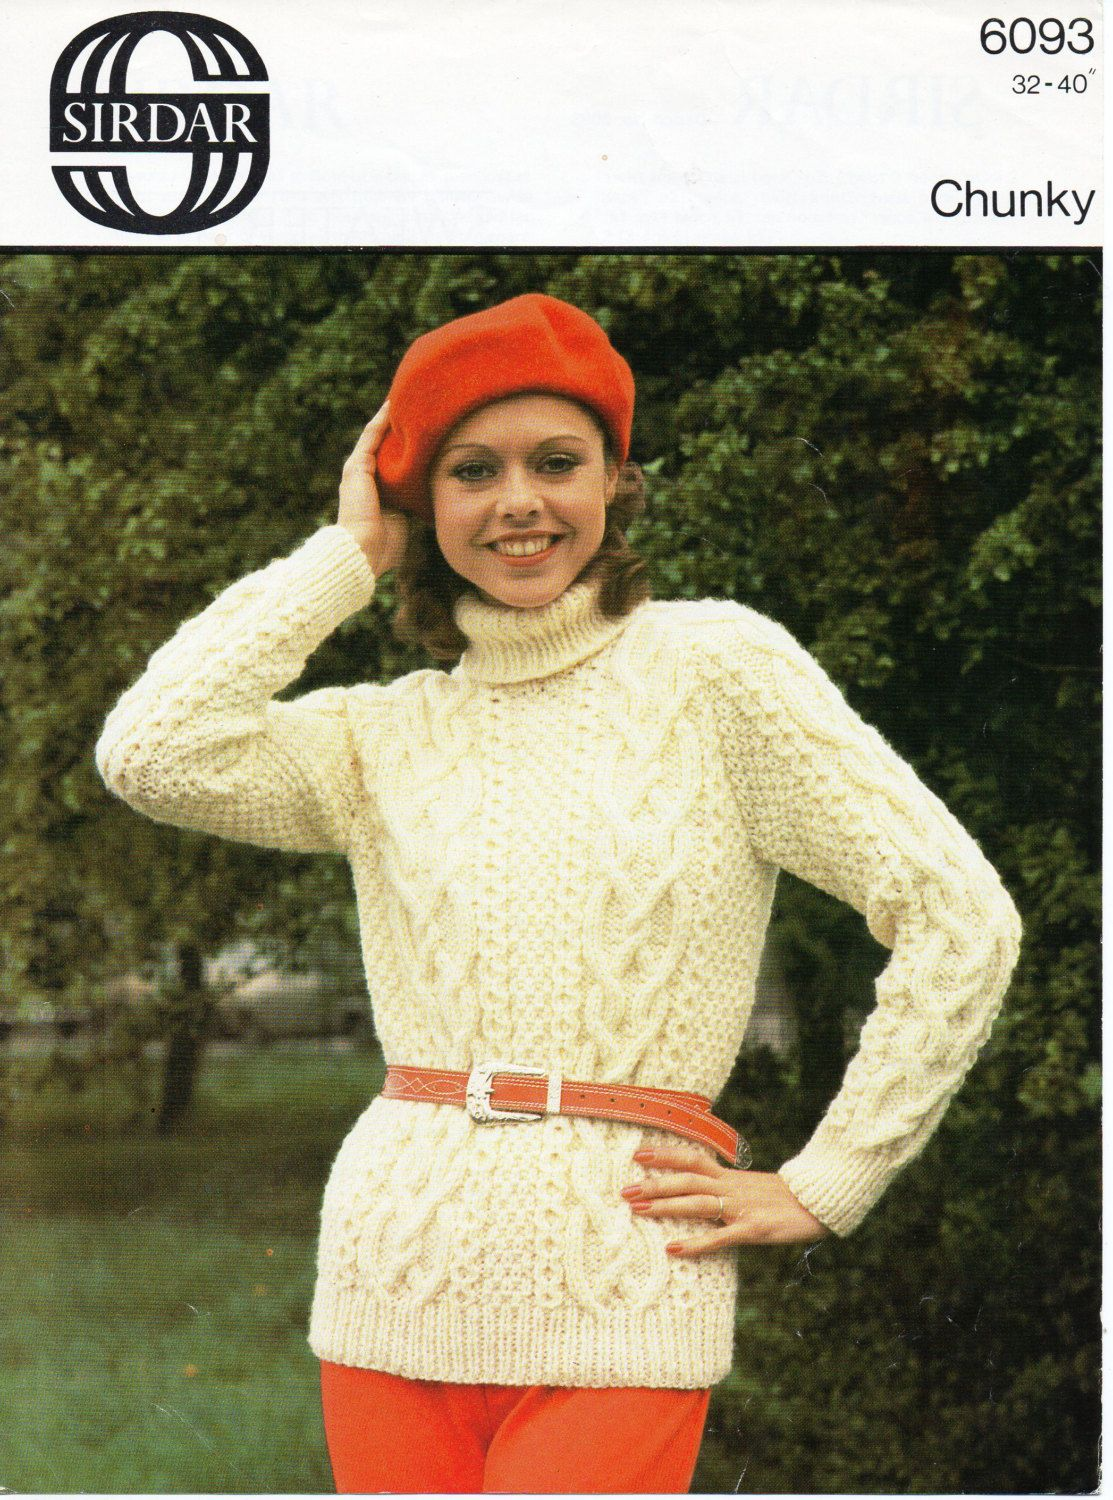 efbb11c864f4f womens polo neck cable sweater knitting pattern aran style jumper 1970s  32-40 inch chunky yarn womens knitting pattern pdf instant download by  Hobohooks on ...